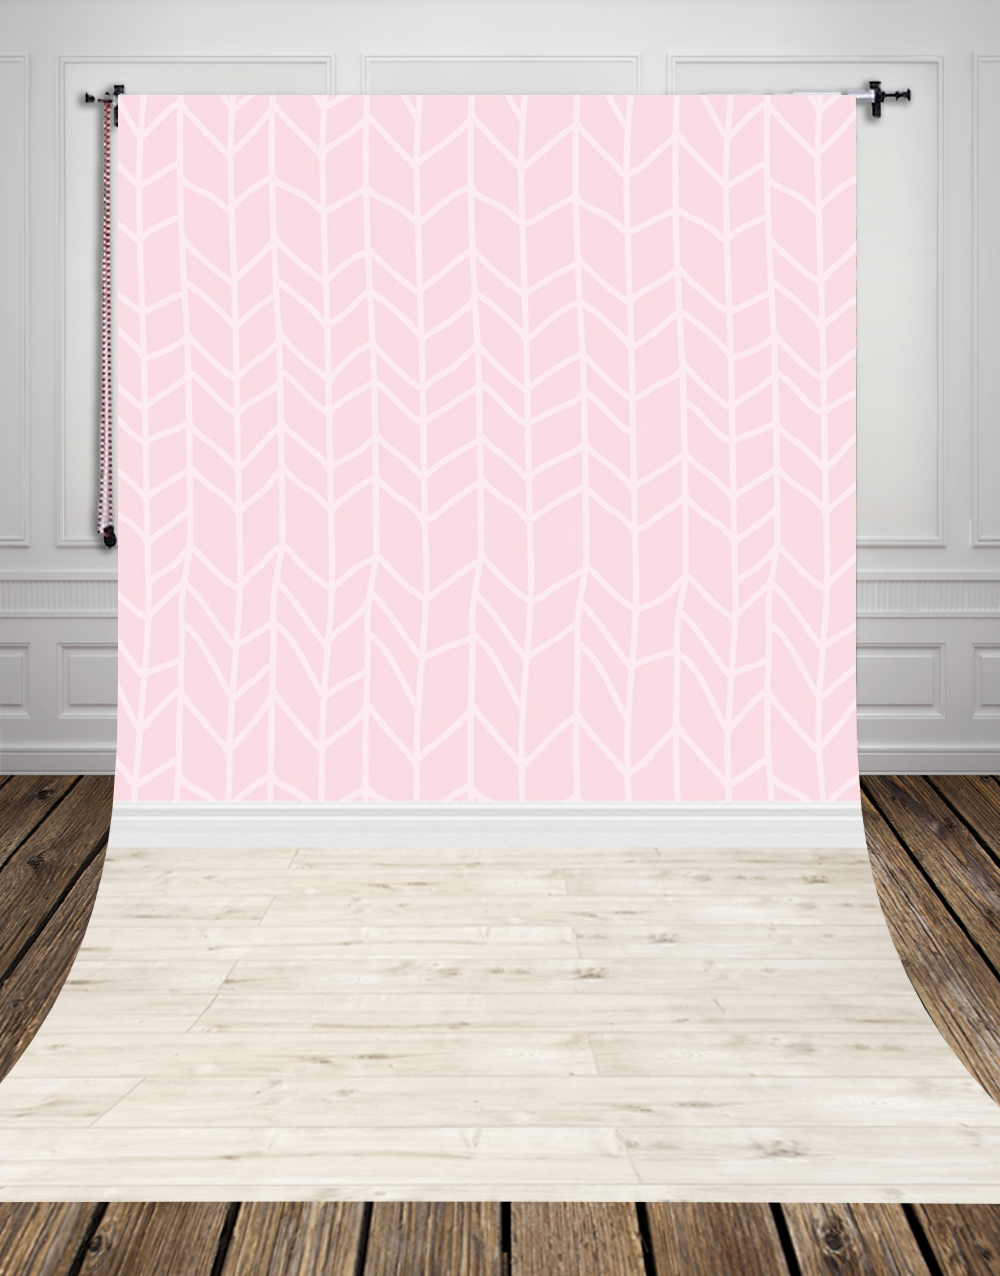 5x10ft(1.5x3m) light-colored studio photo background backdrop made of  Art fabric pink wallpaper for newborn photography D-9712